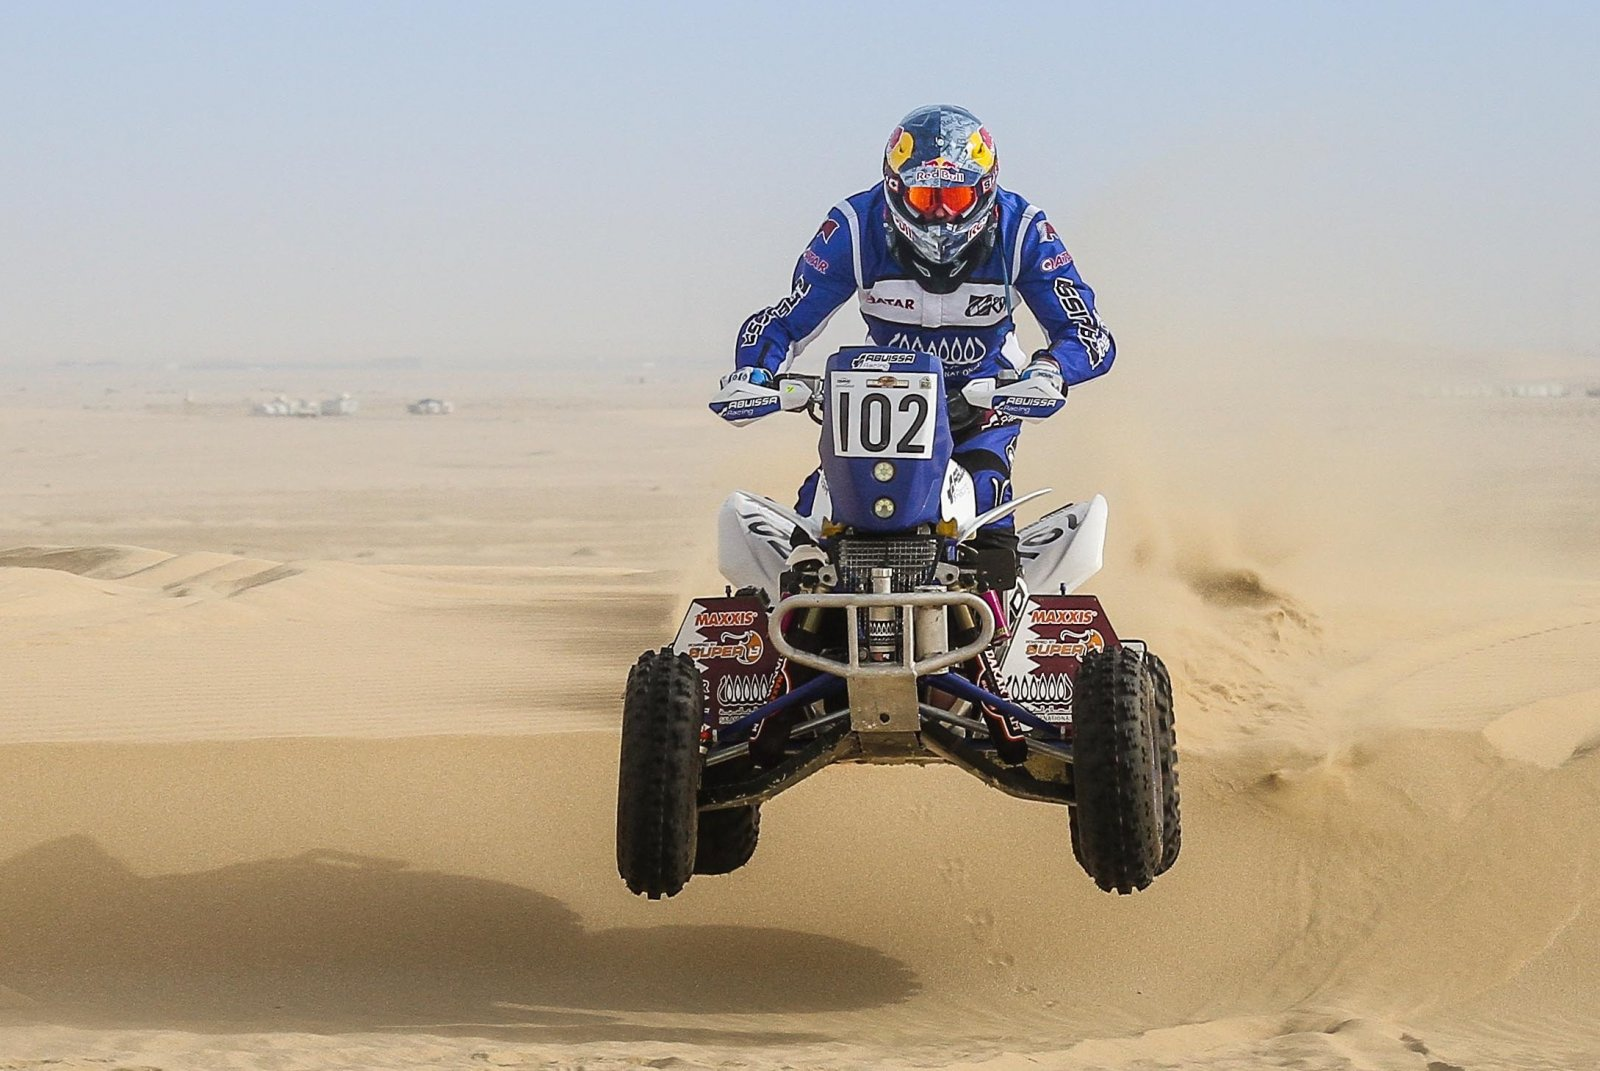 Qatar's Mohammed Abu Issa in action in the quad category ..jpg